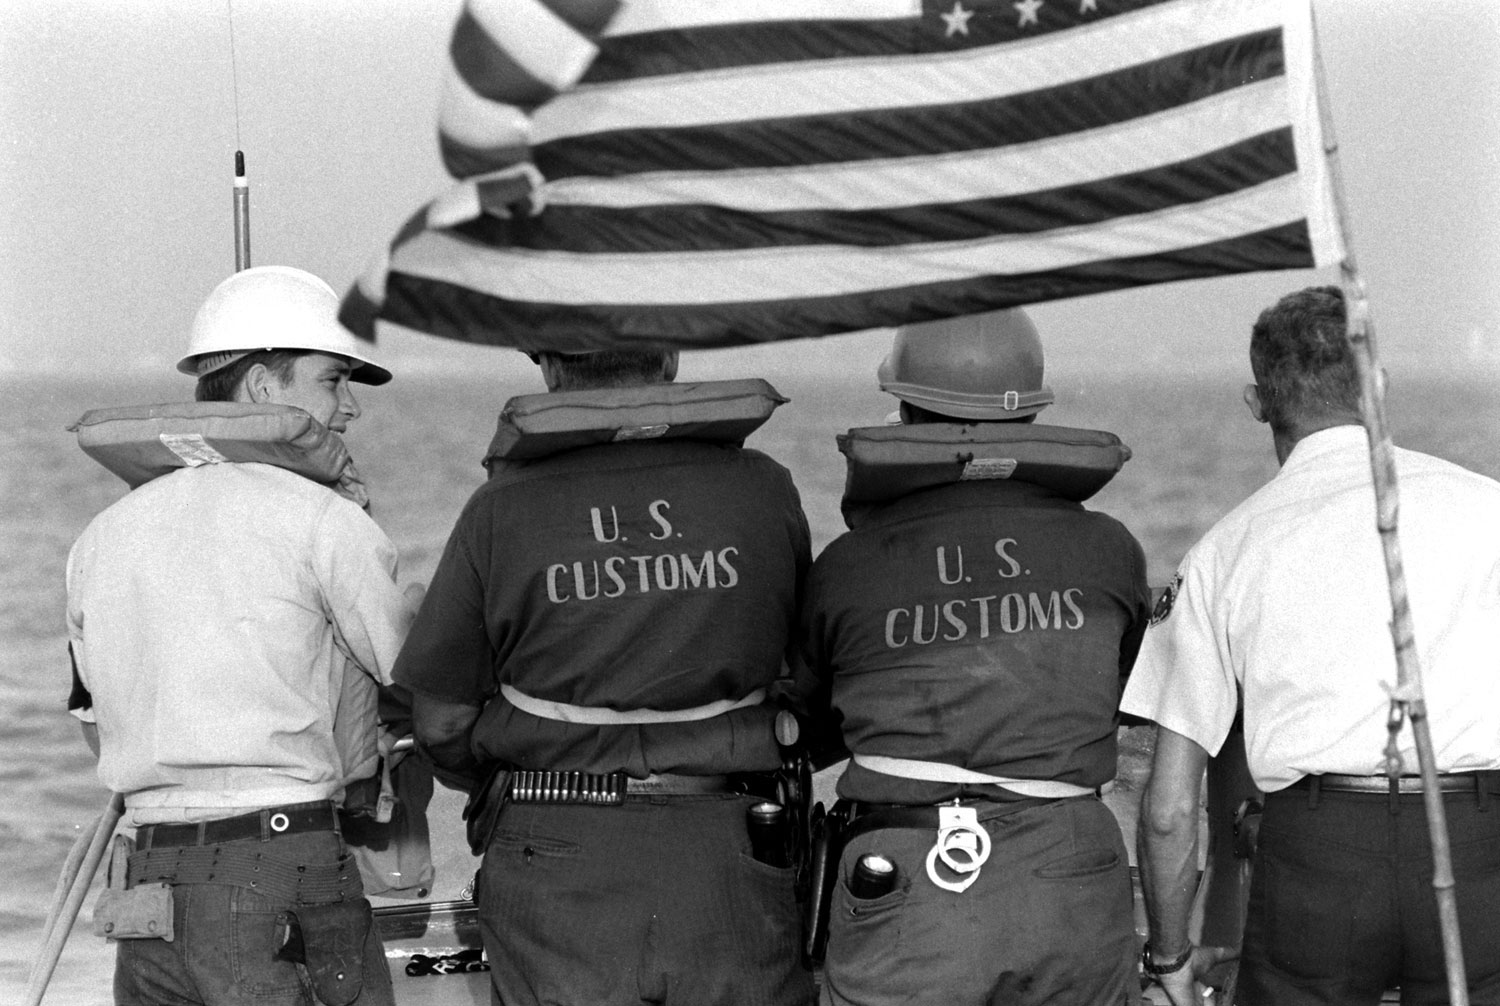 Customs agents, Texas, 1969.